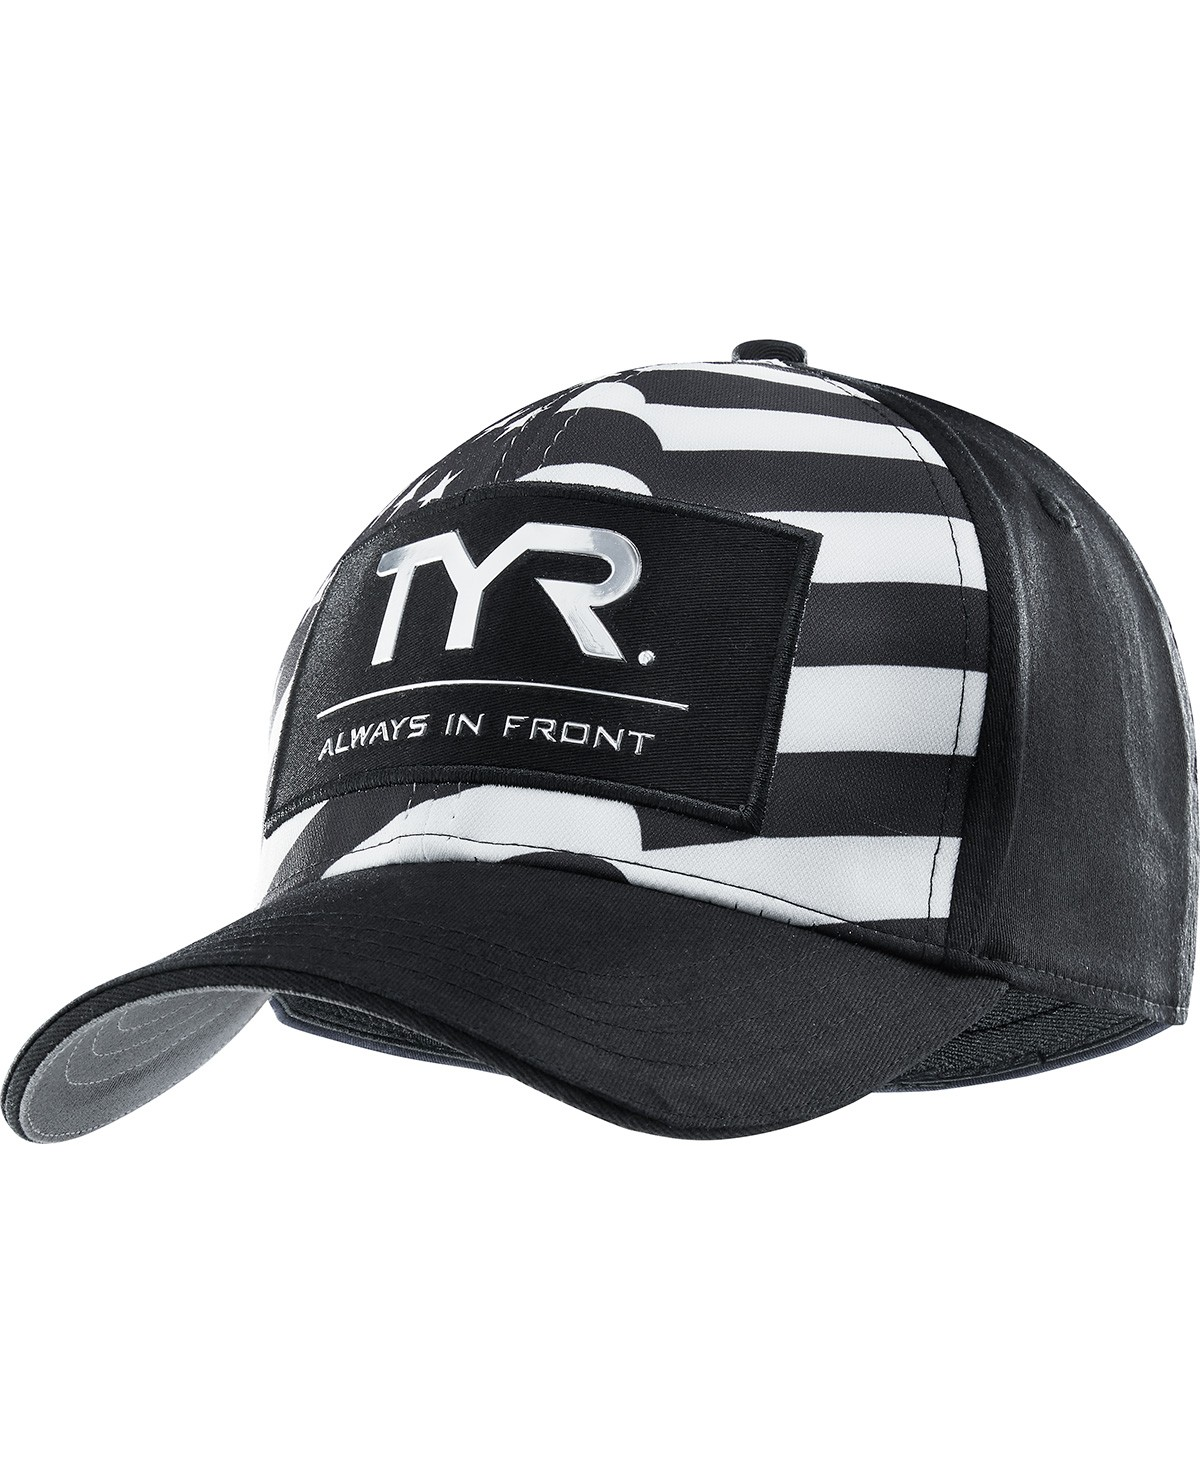 f2707b2081fb6 ... TYR A.I.F. Glory Fitted Hat ...